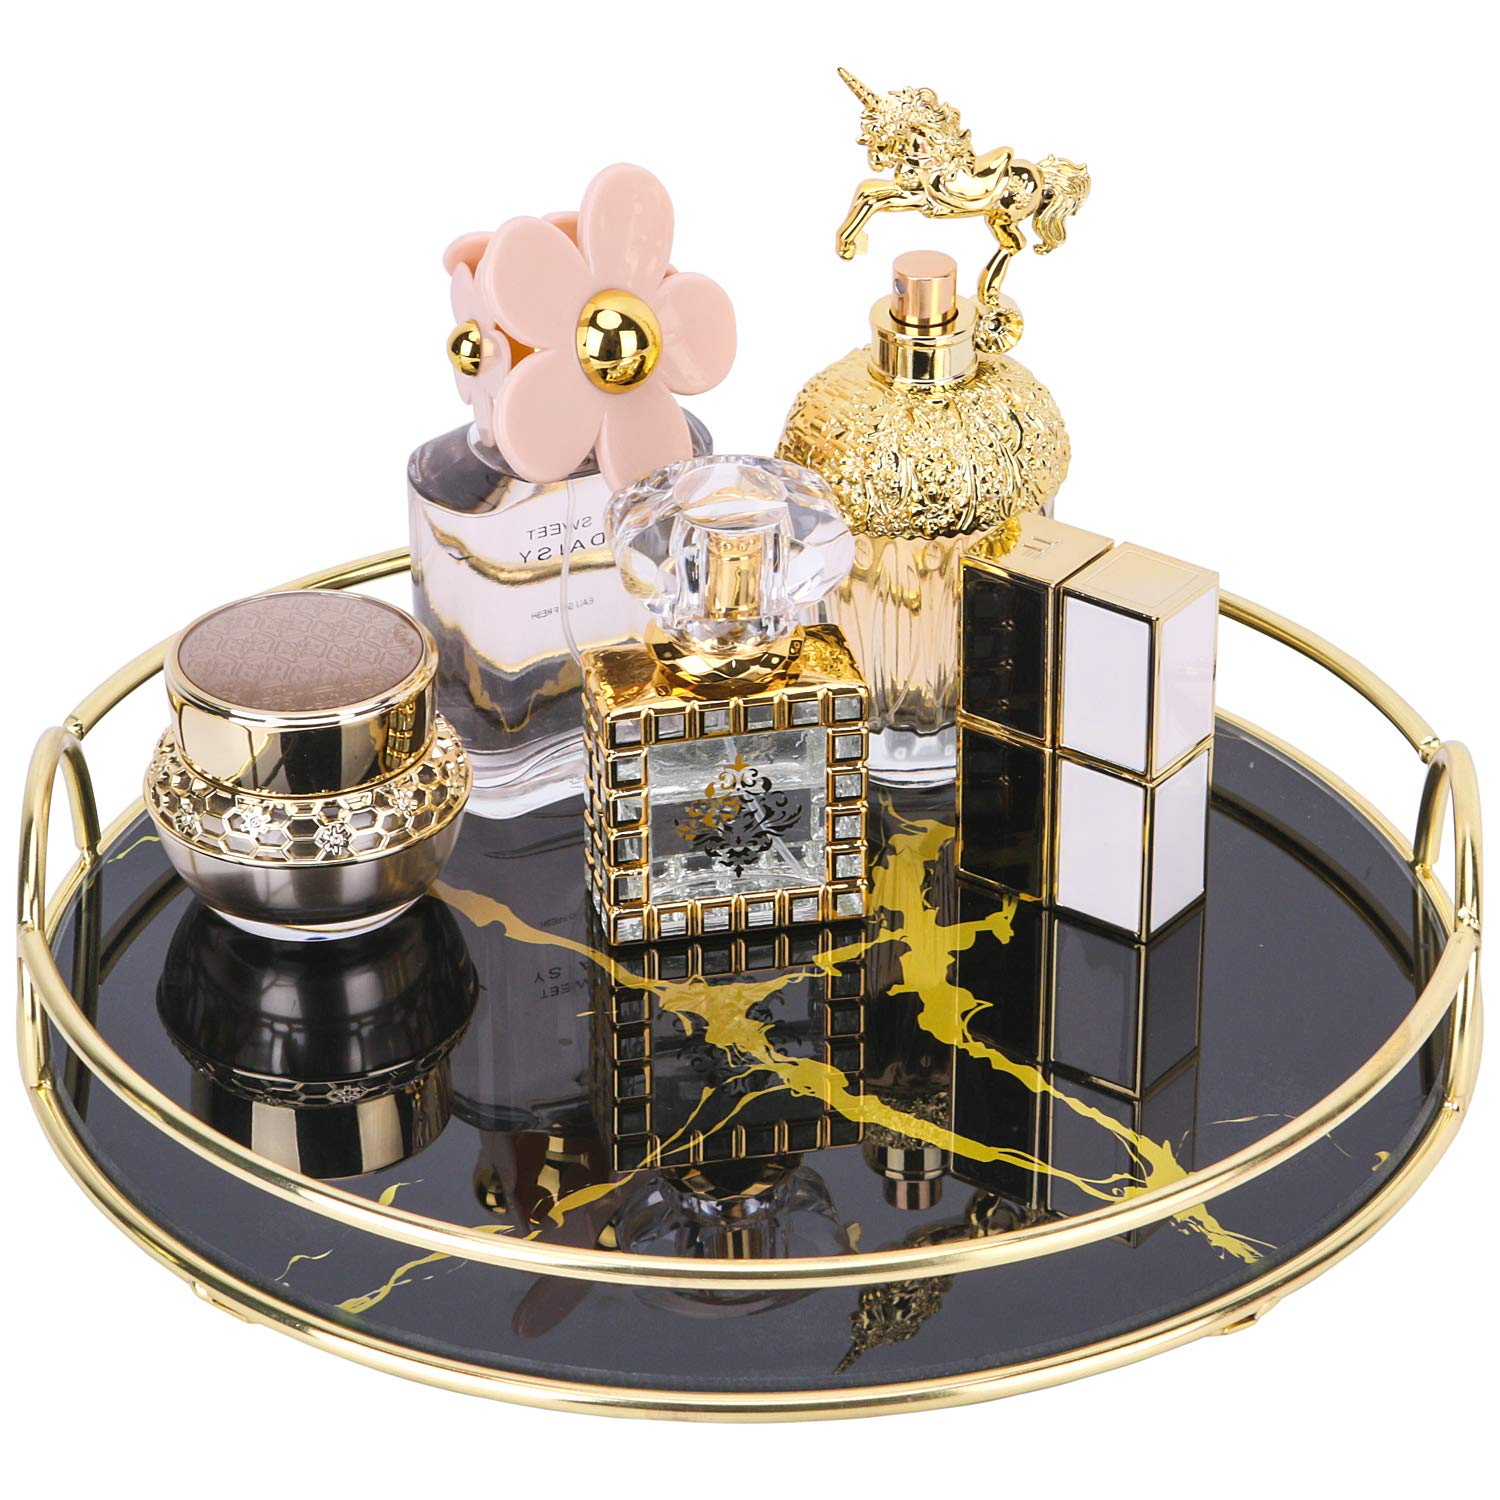 Simmer Stone Vanity Tray, Decorative Glass Perfume Tray for Makeups, Jewelries and Decors, Round Makeup Organizer Rack for Dresser, Bathroom Countertop, Ottoman, Coffee Table and More